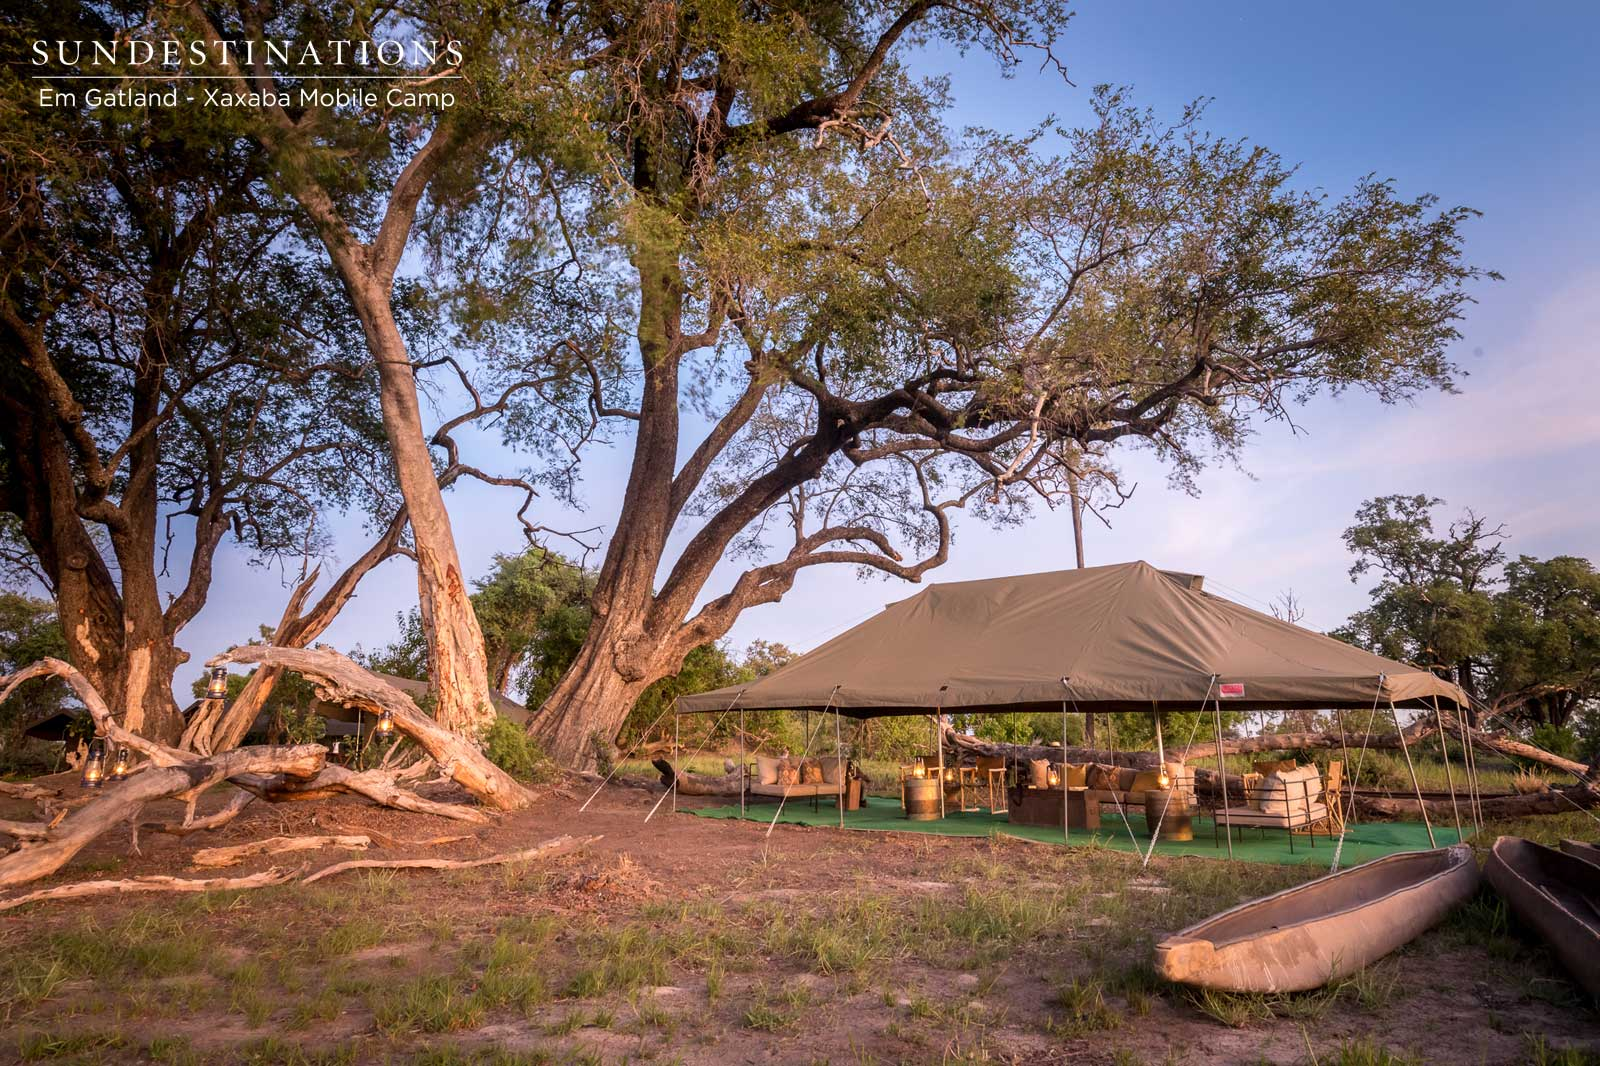 Xaxaba is the Perfect Mobile Camp in the Okavango Delta